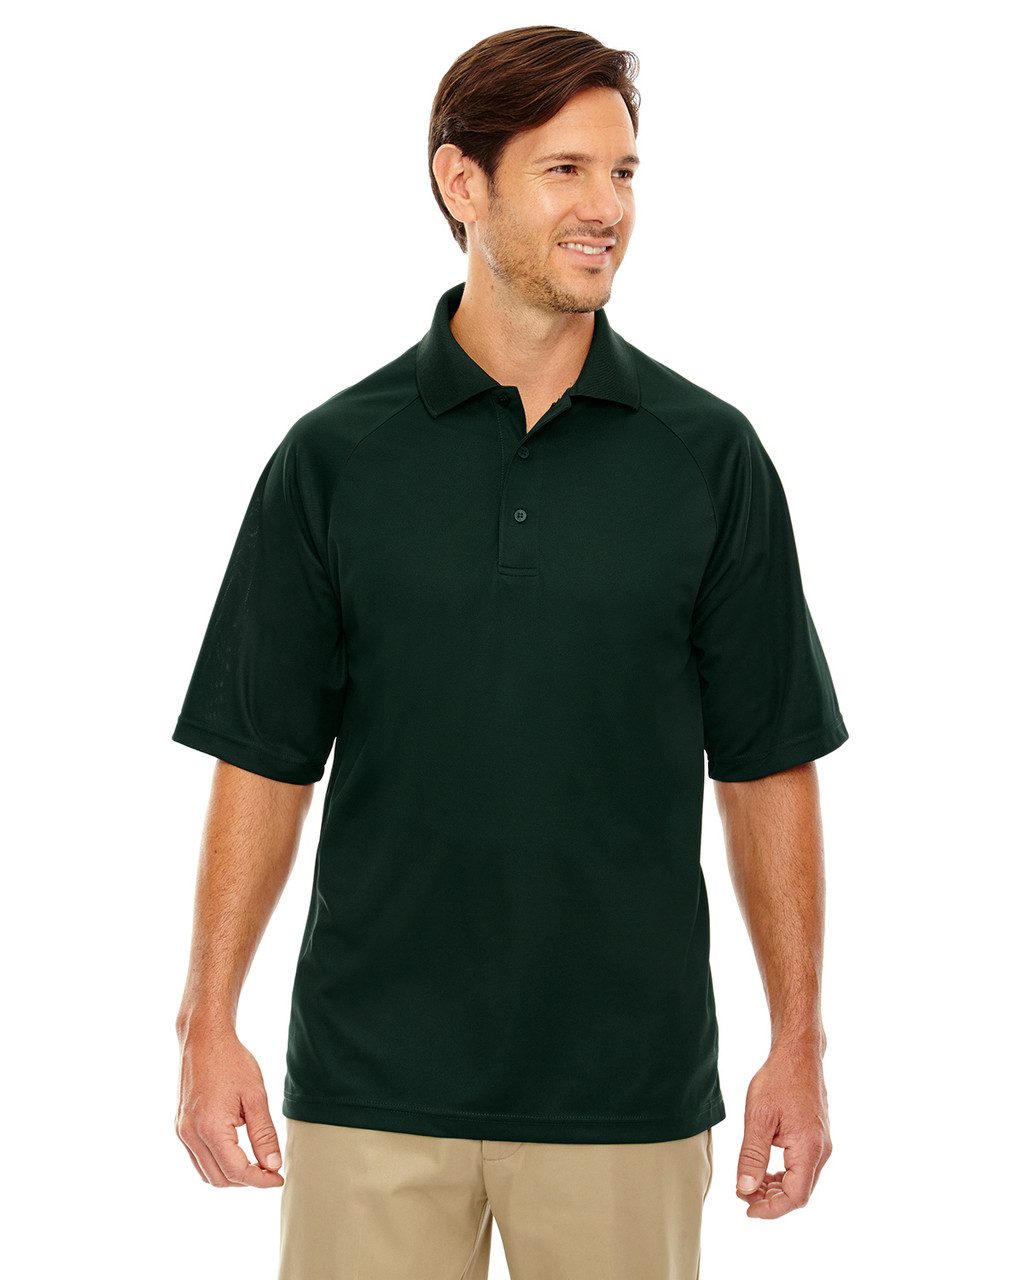 Forest - 85080 Extreme Men's Eperformance™ Pique Polo Shirt